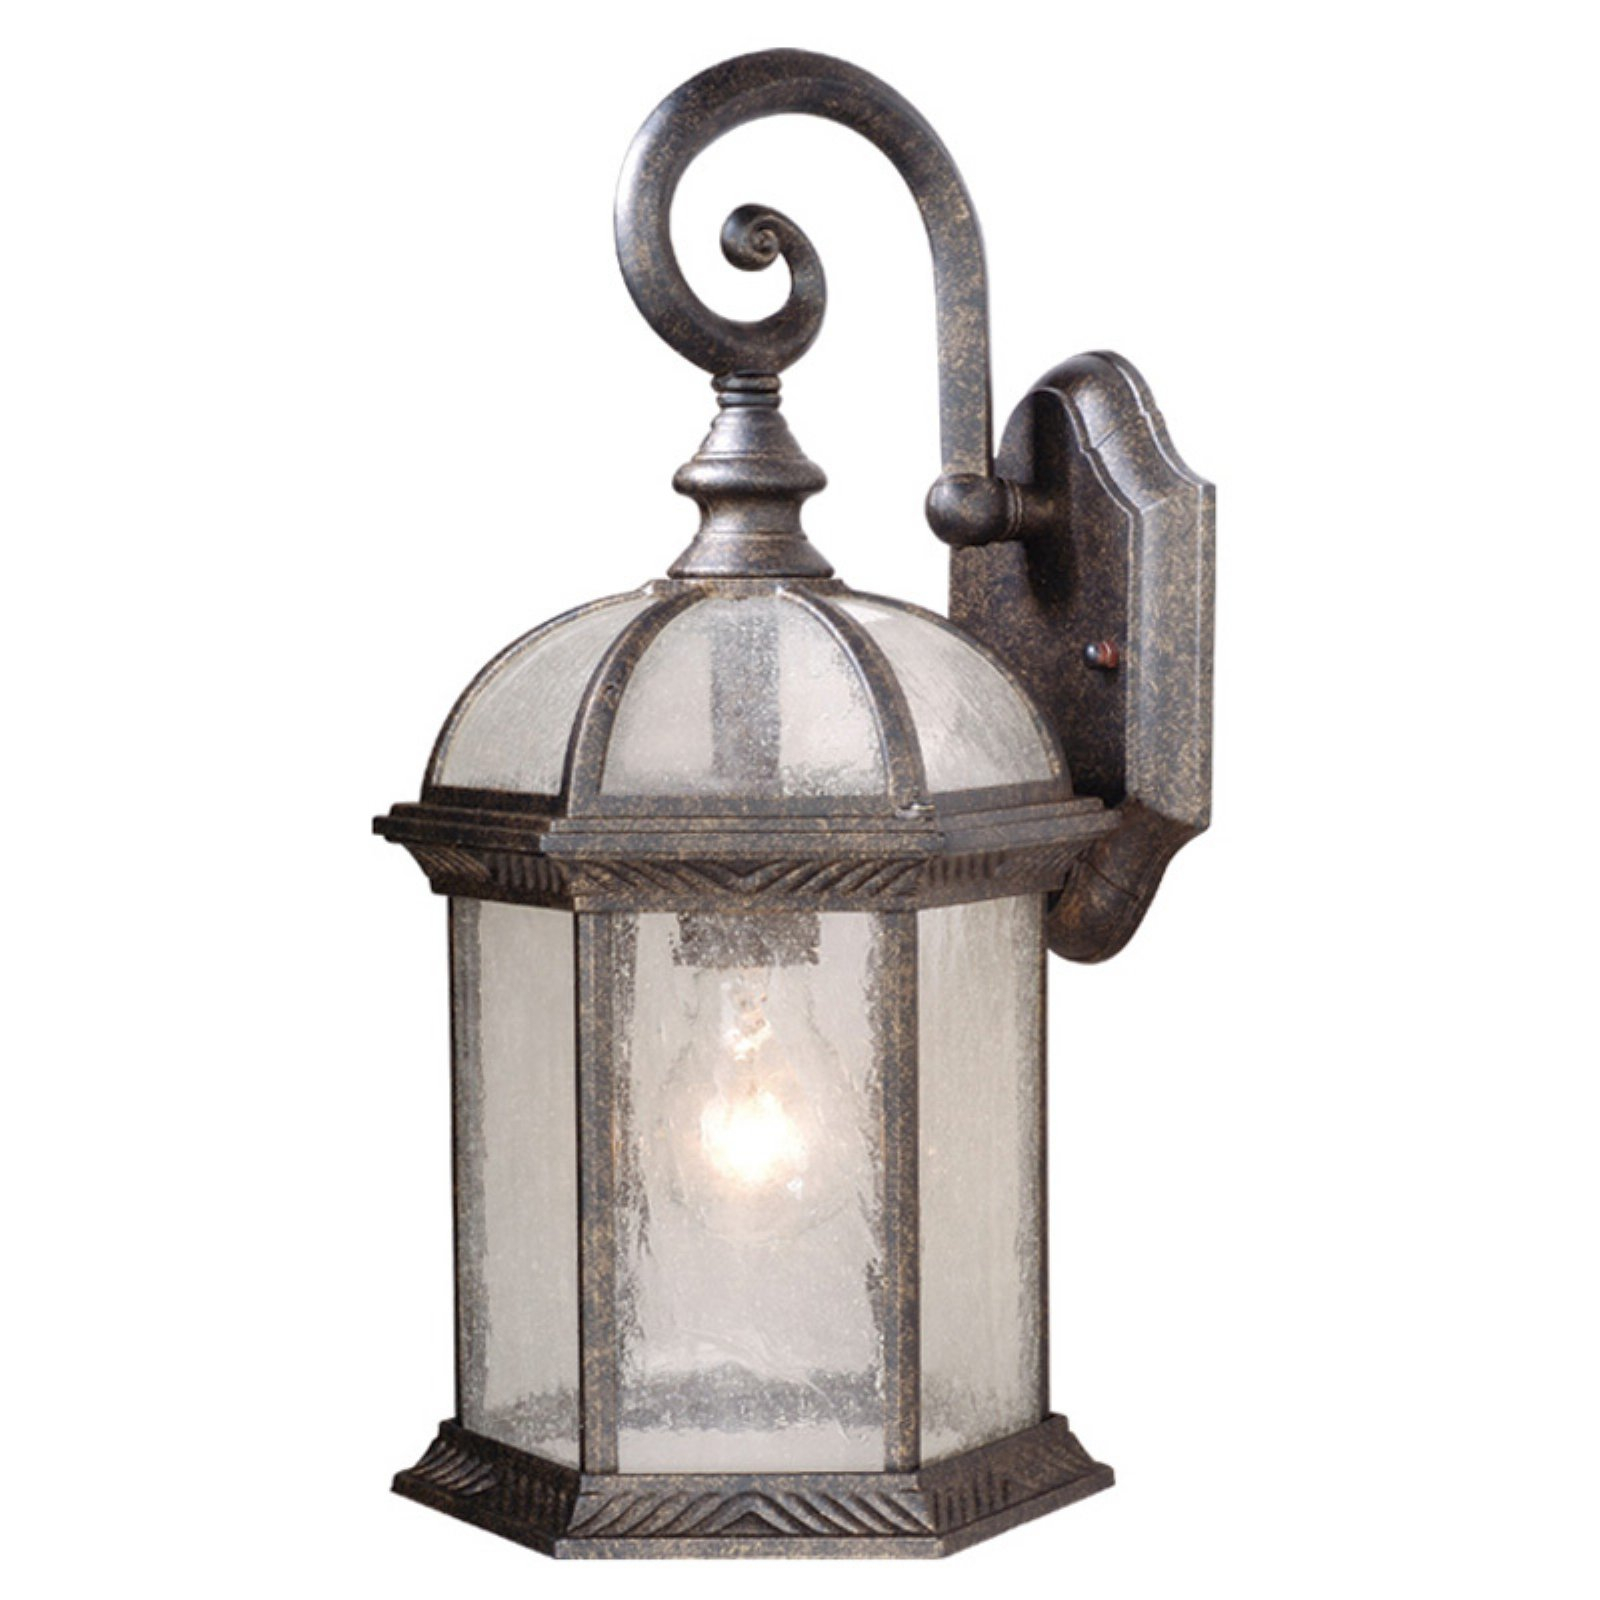 Vaxcel Chateau OW39783 Outdoor Wall Sconce